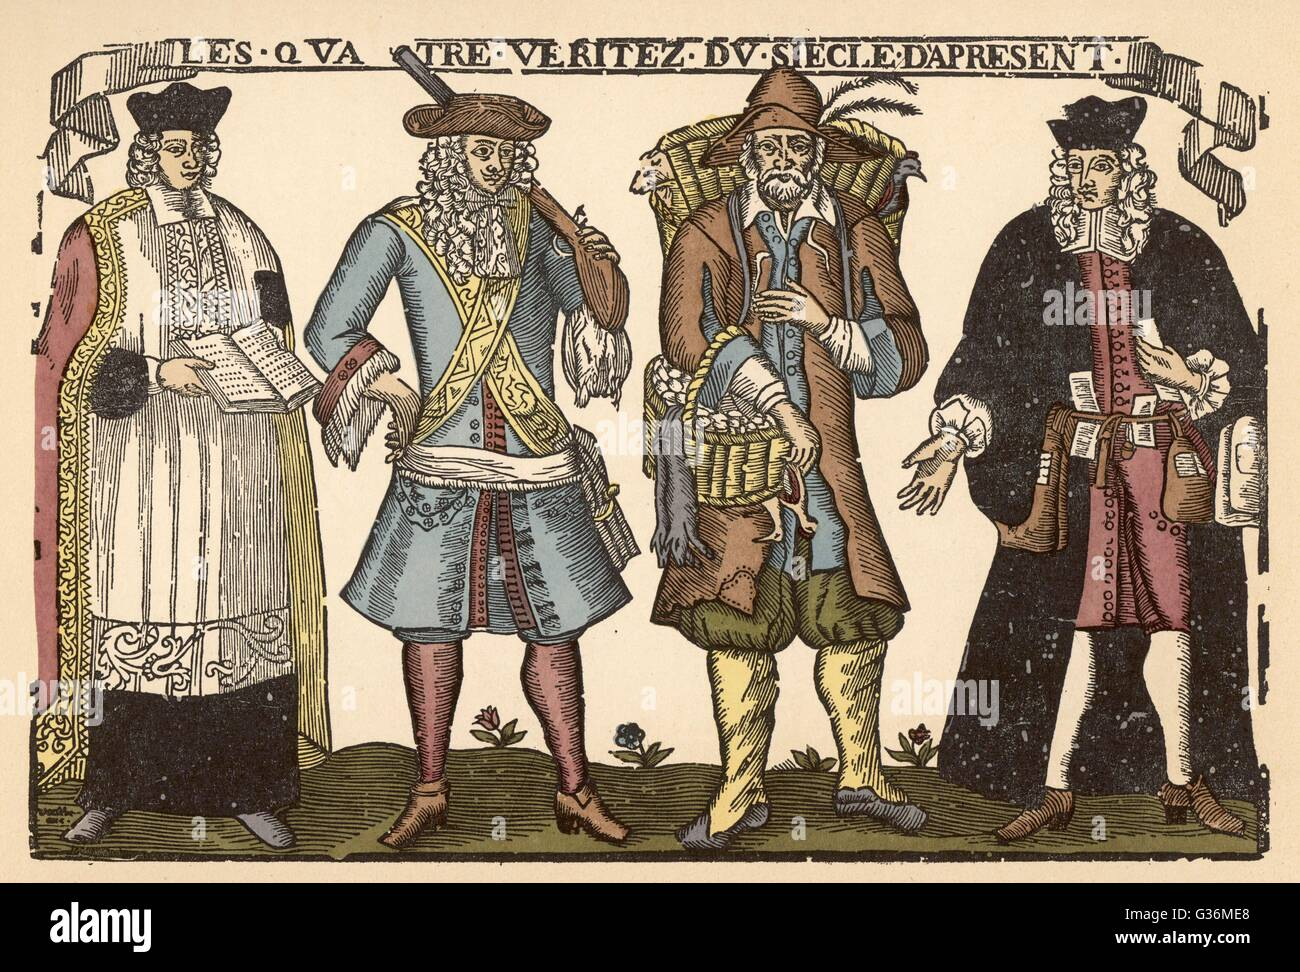 The four classes - the priest,  the soldier, the peasant and  the magistrate        Date: late 17th century - Stock Image